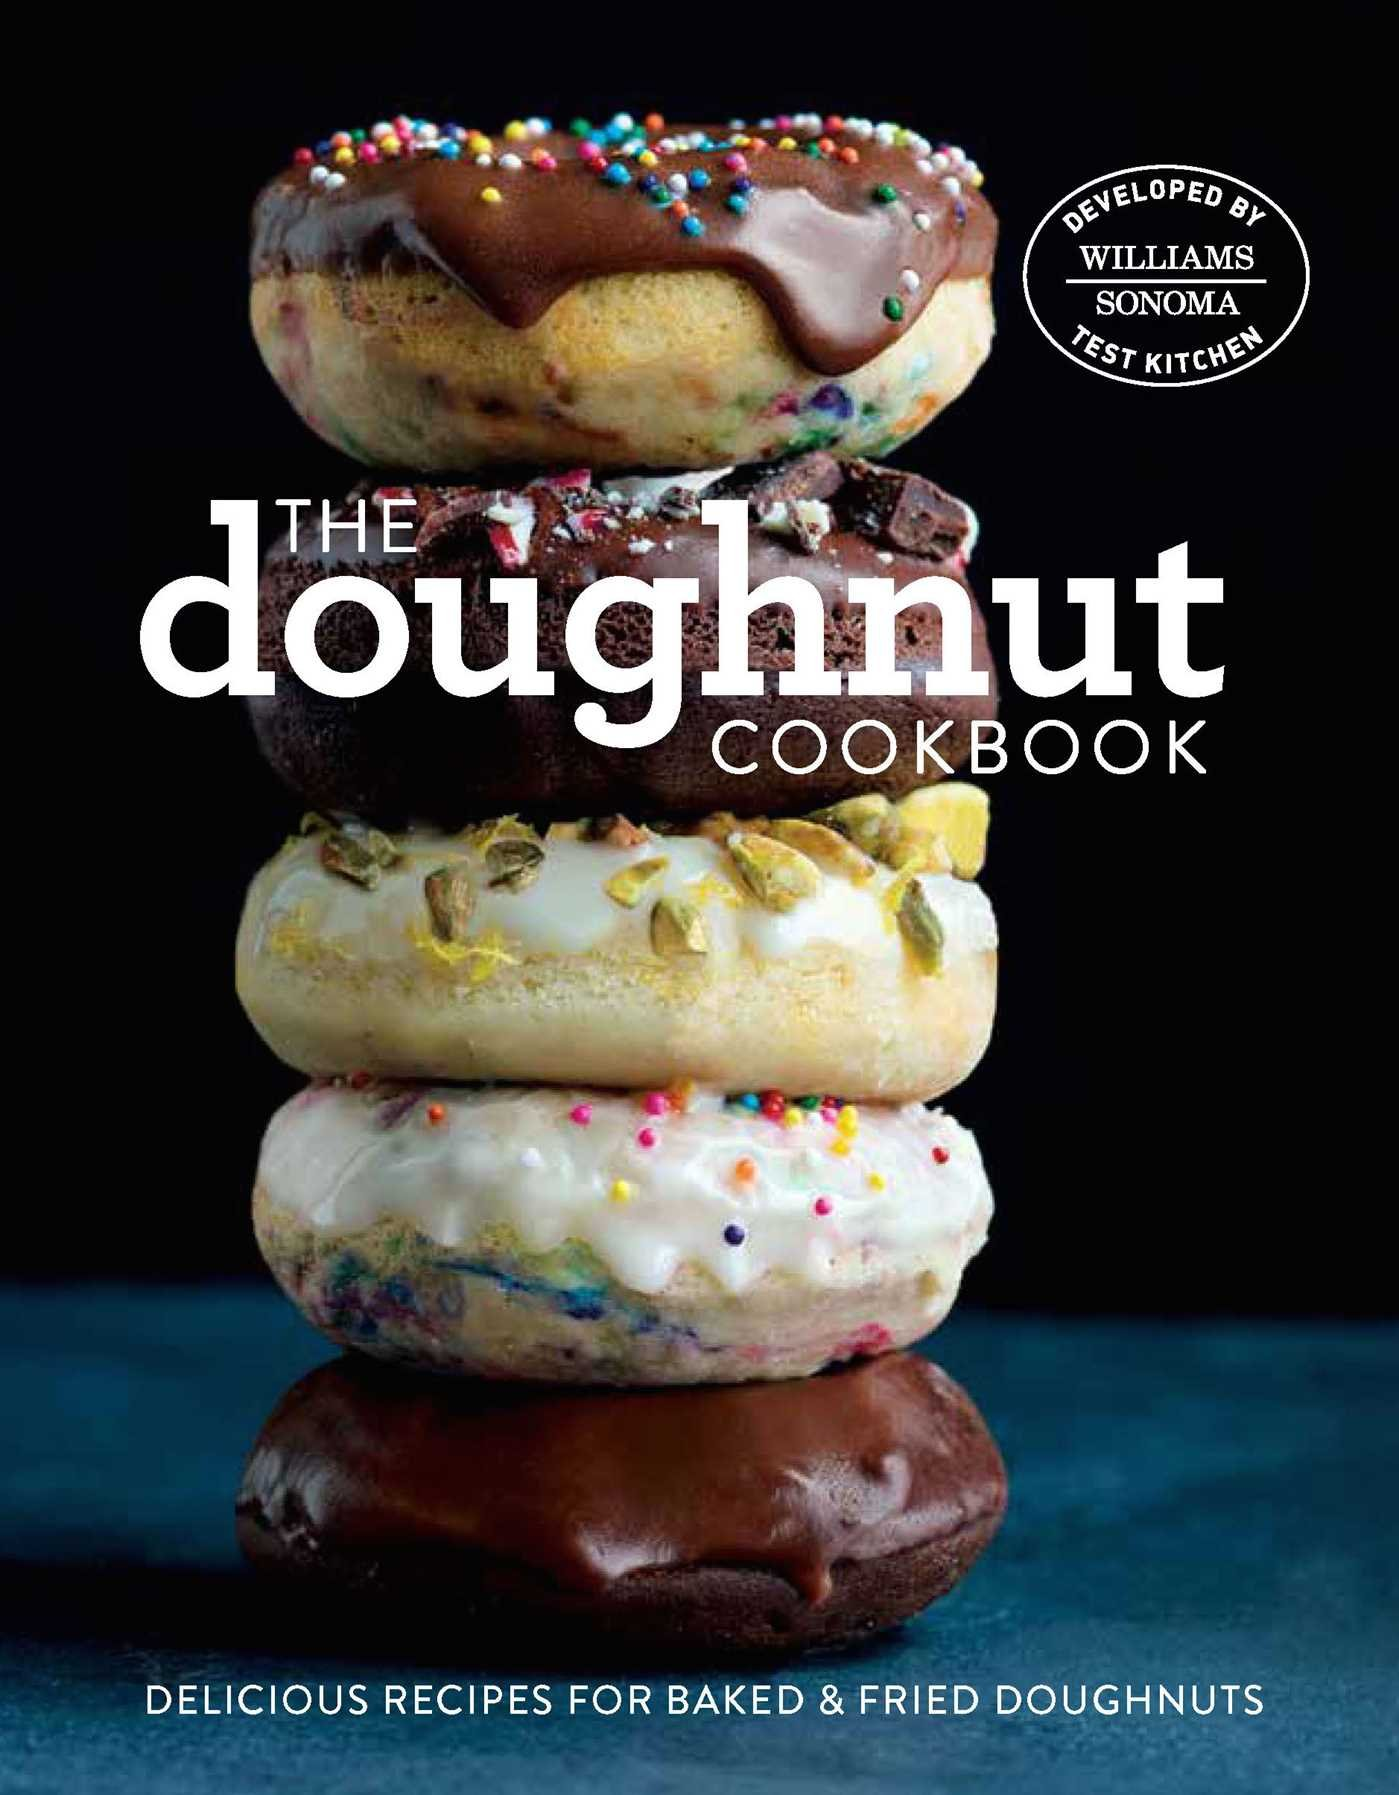 The Doughnut Cookbook  Easy Recipes For Baked And Fried Doughnuts